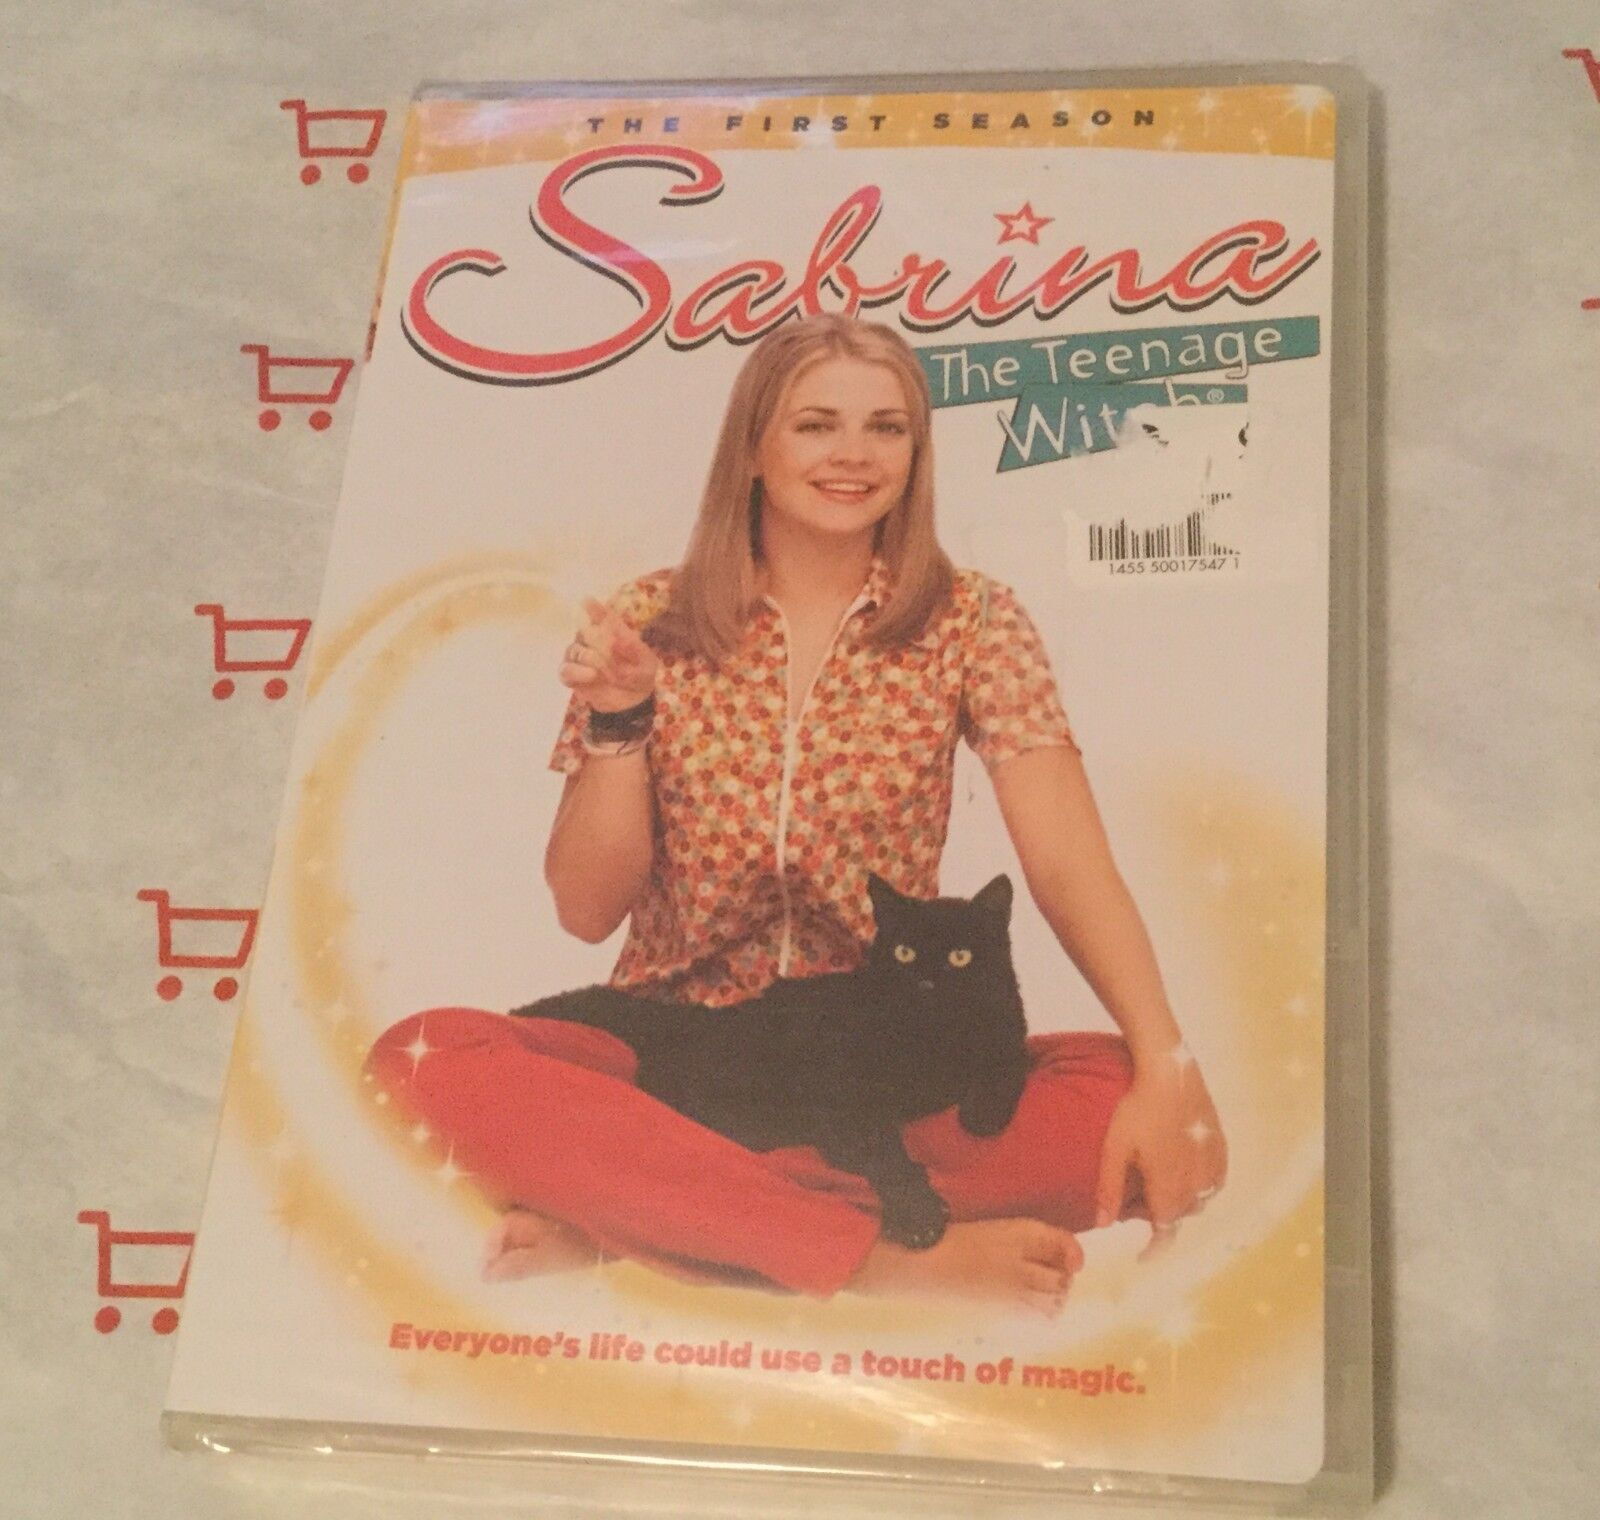 Sabrina the Teenage Witch - The Complete First Season (DVD, 4-Disc Set) NEW